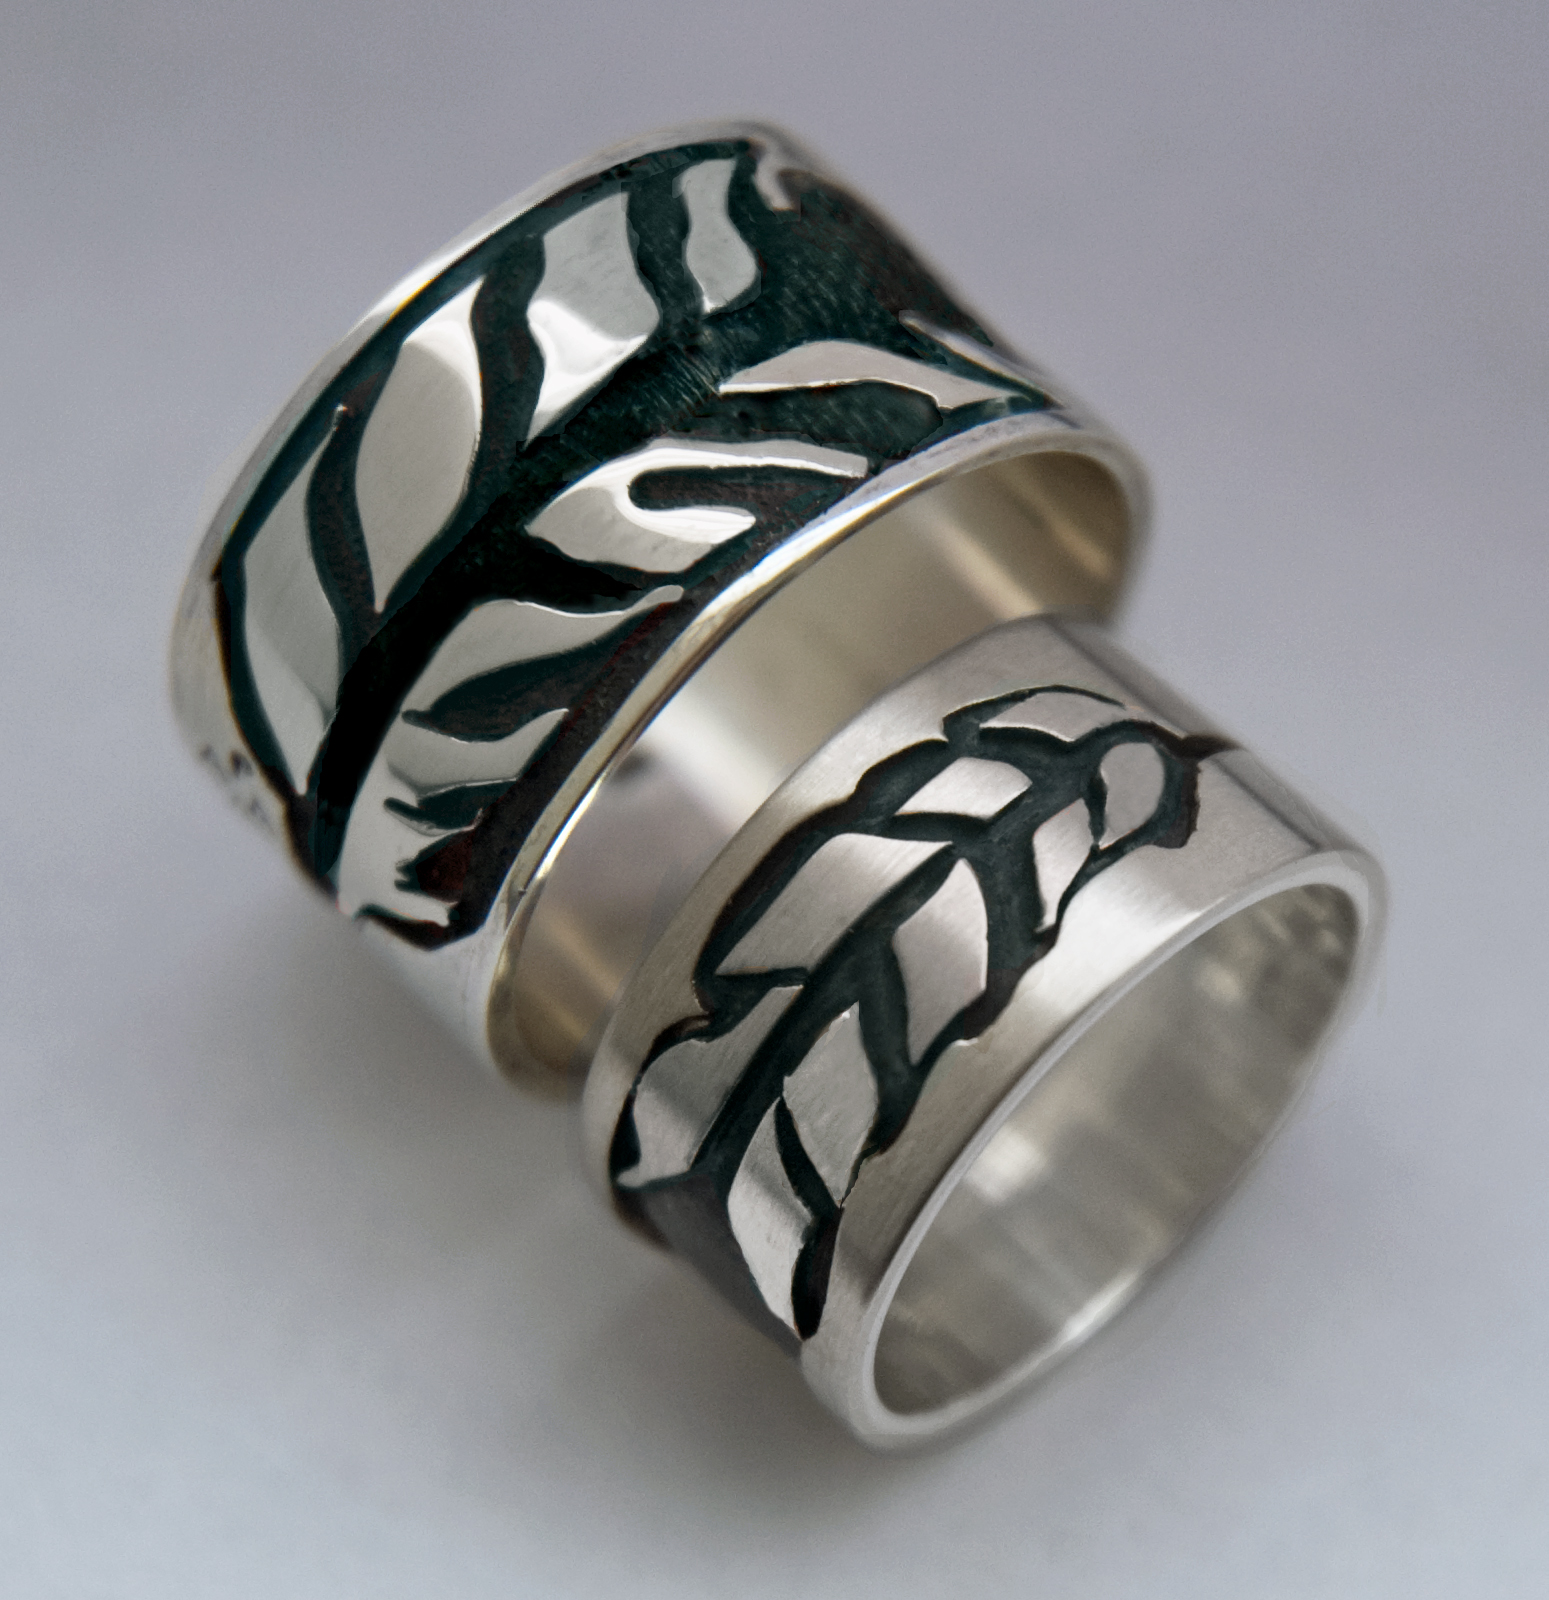 go traditional with native american wedding rings native american wedding bands Go traditional with native american wedding rings Thunder Takes Flight